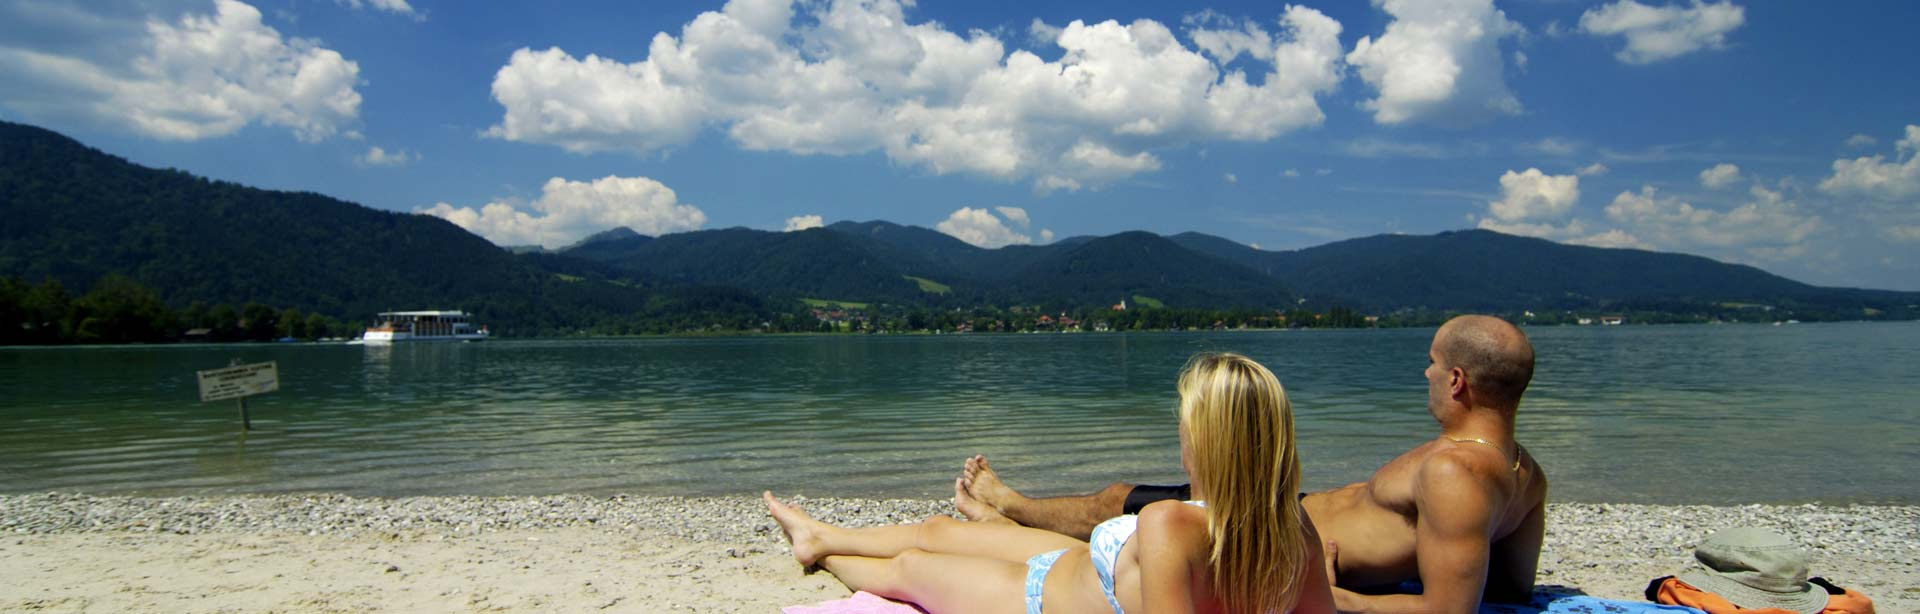 Bild Baden am Tegernsee-Point